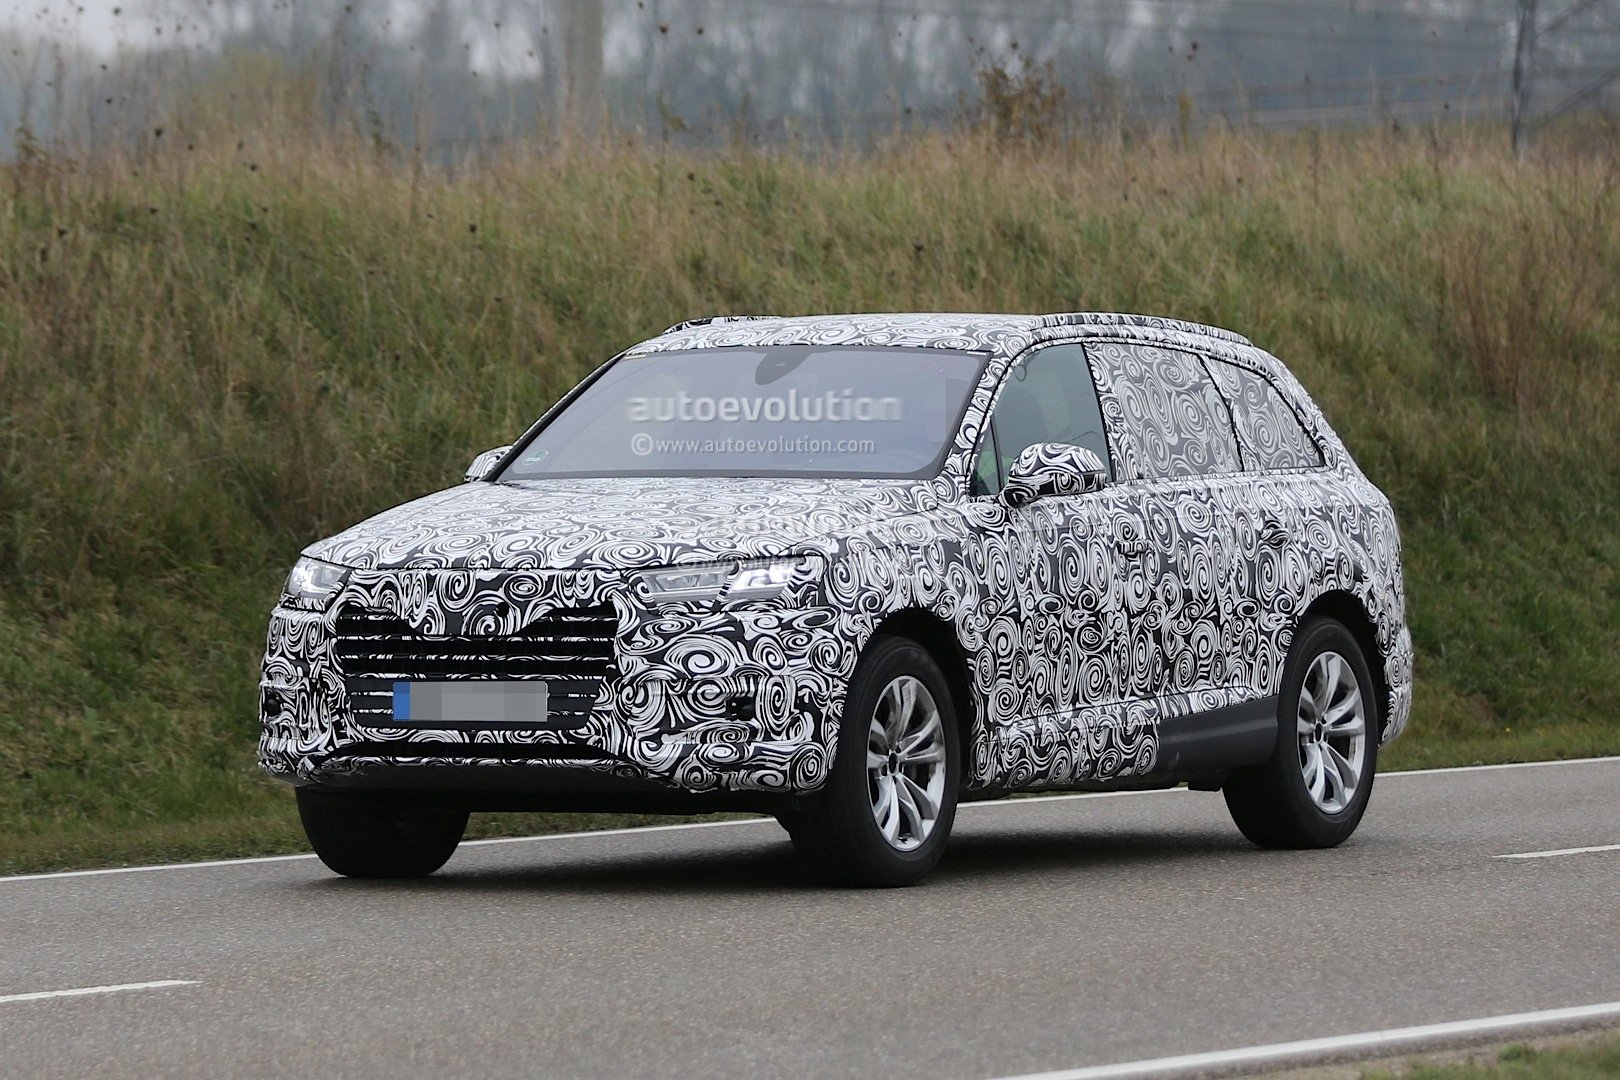 http://autotun16.ru/images/upload/2016-audi-q7-spied-with-matrix-led-headlights-for-first-time_2.jpg